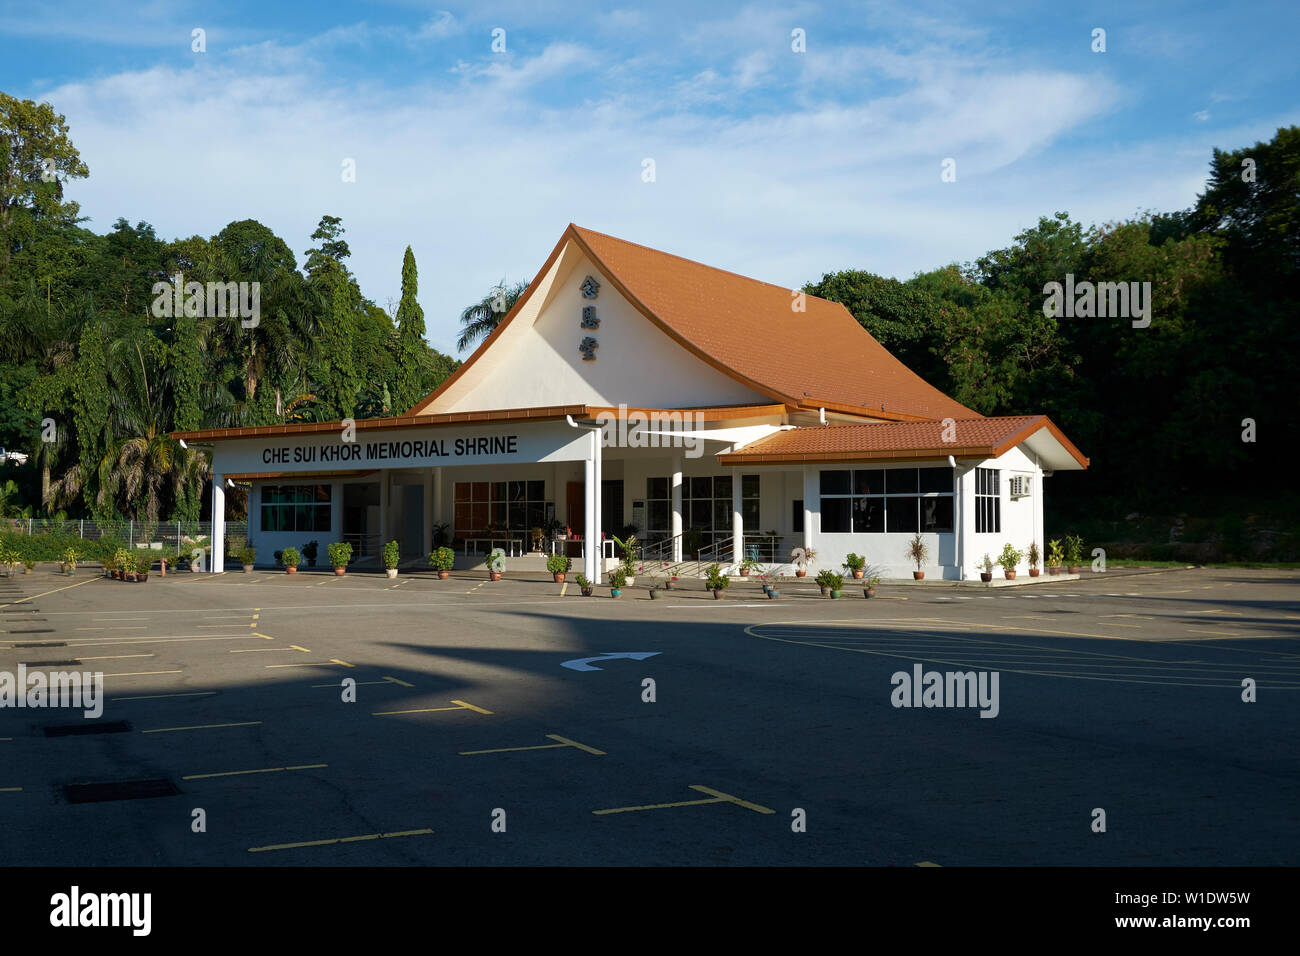 The Memorial Shrine building at the Che Sui Khor Chinese temple in Kota Kinabalu, Borneo, Malaysia. - Stock Image